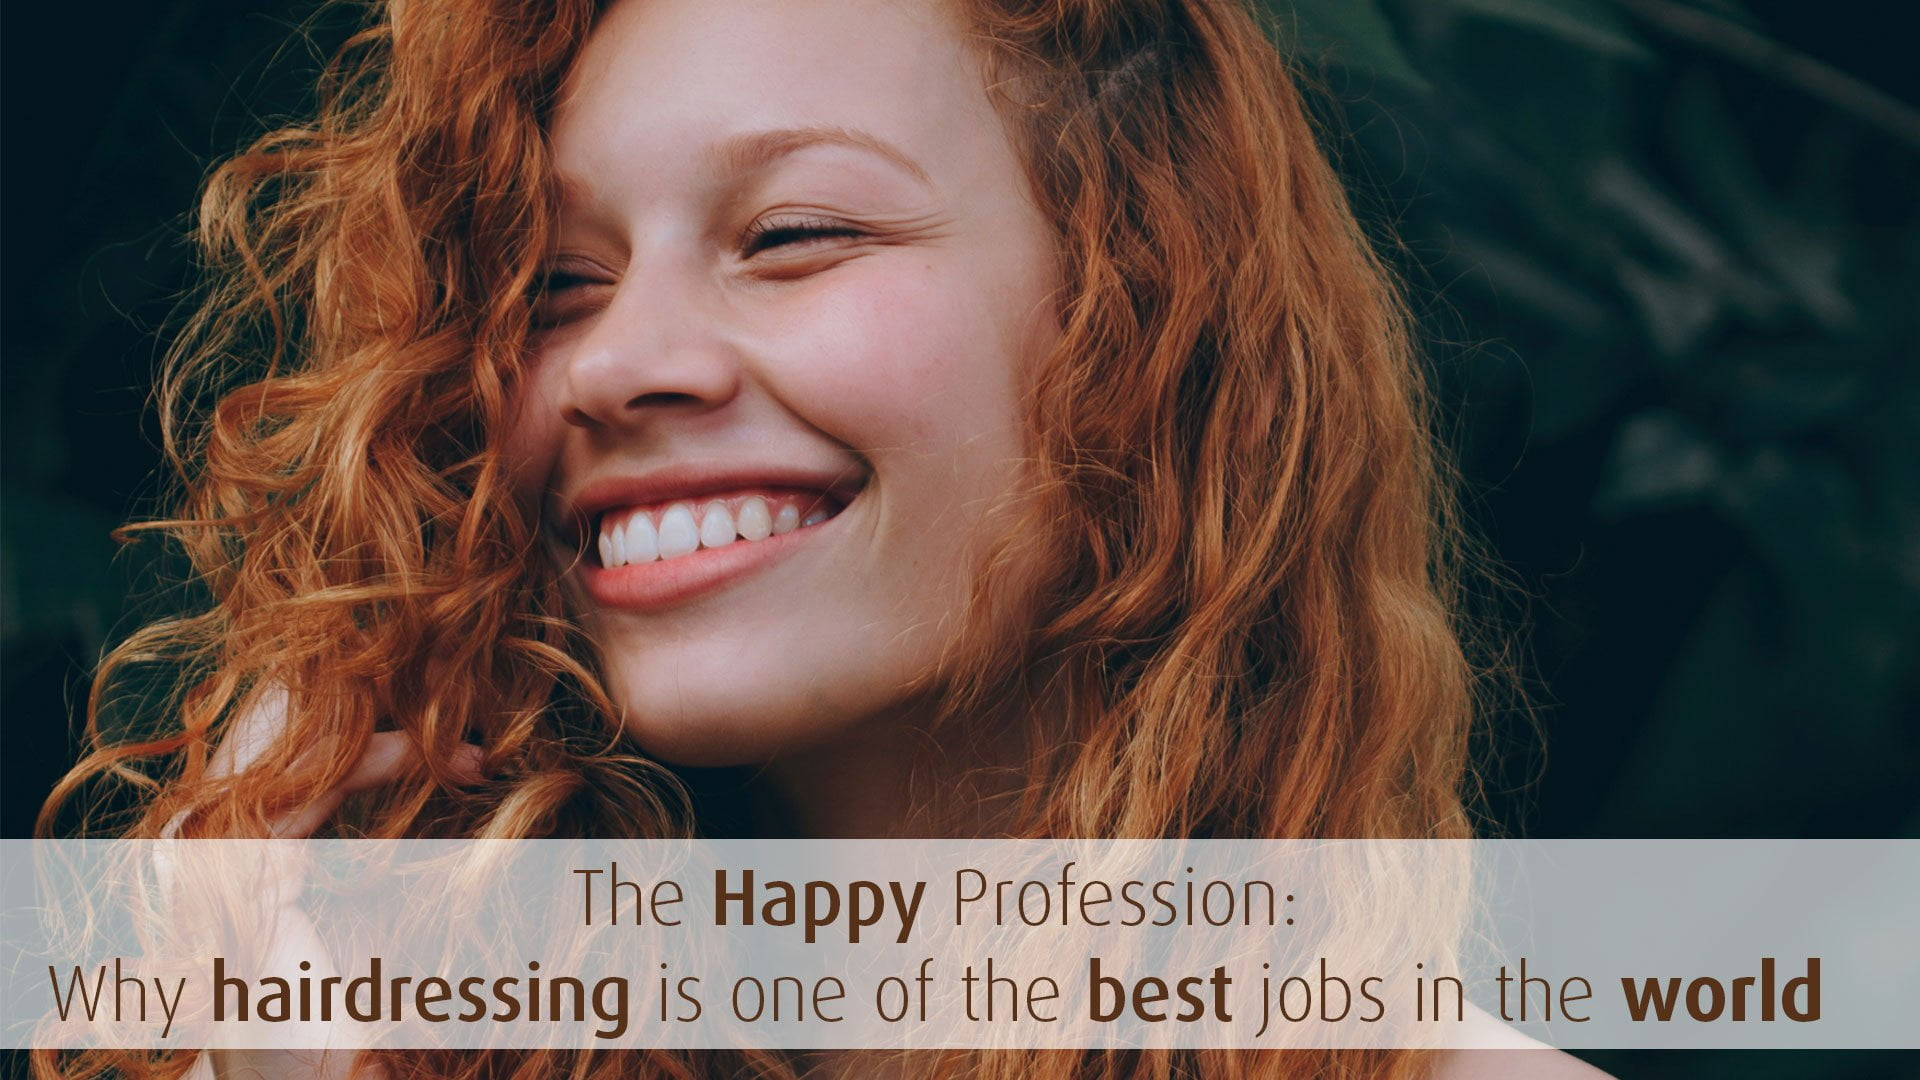 The happy profession